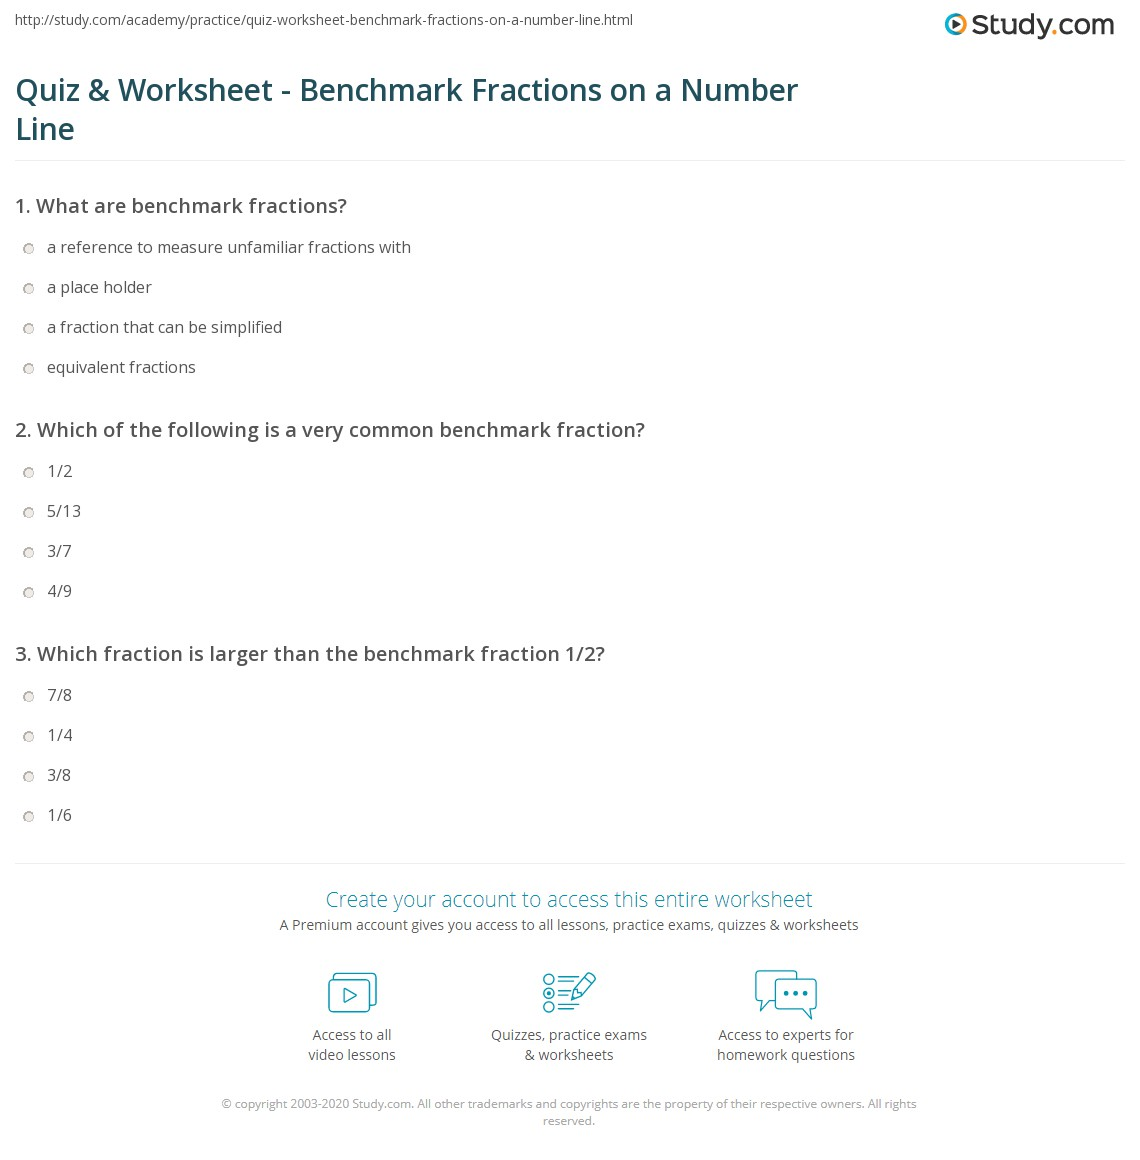 Quiz and Worksheet Benchmark Fractions on a Number Line – Benchmark Fractions Worksheet